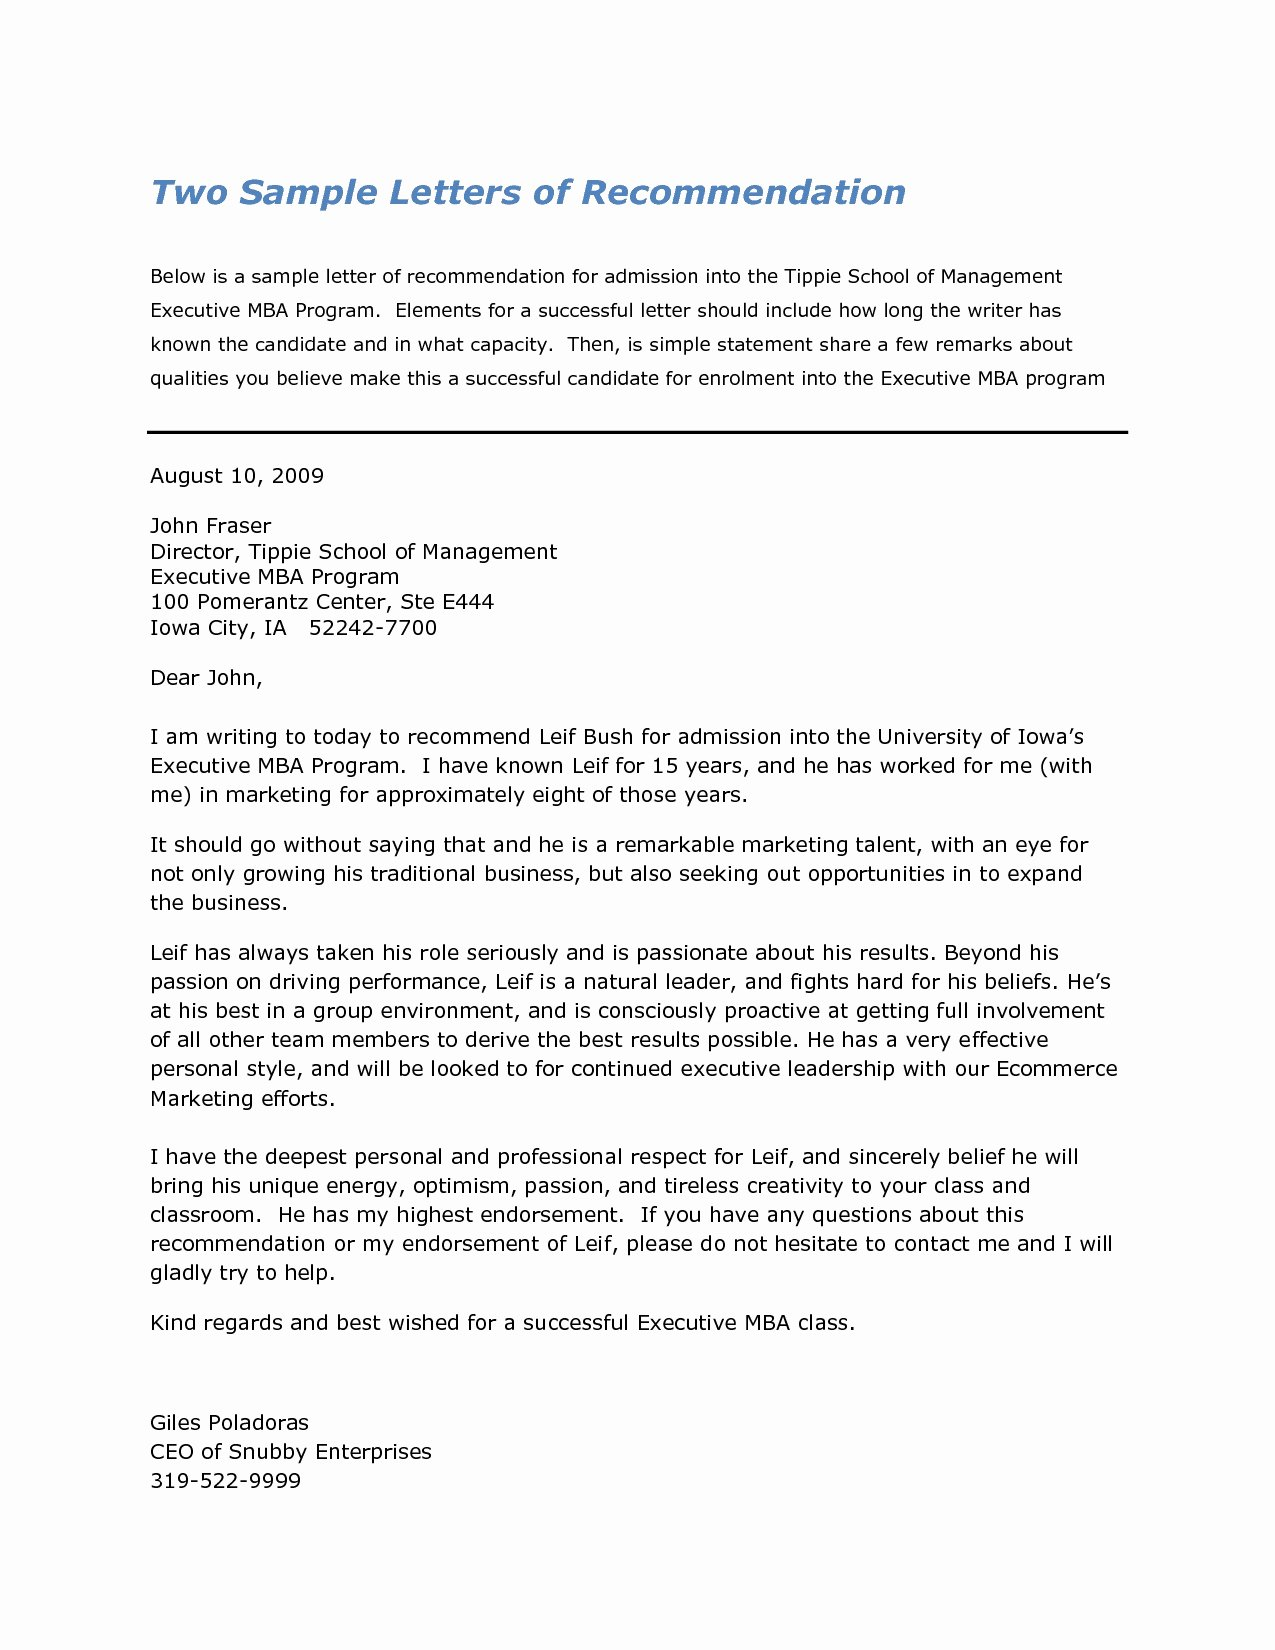 Business School Recommendation Letter Sample Unique Sample Re Mendation Letters for Business School